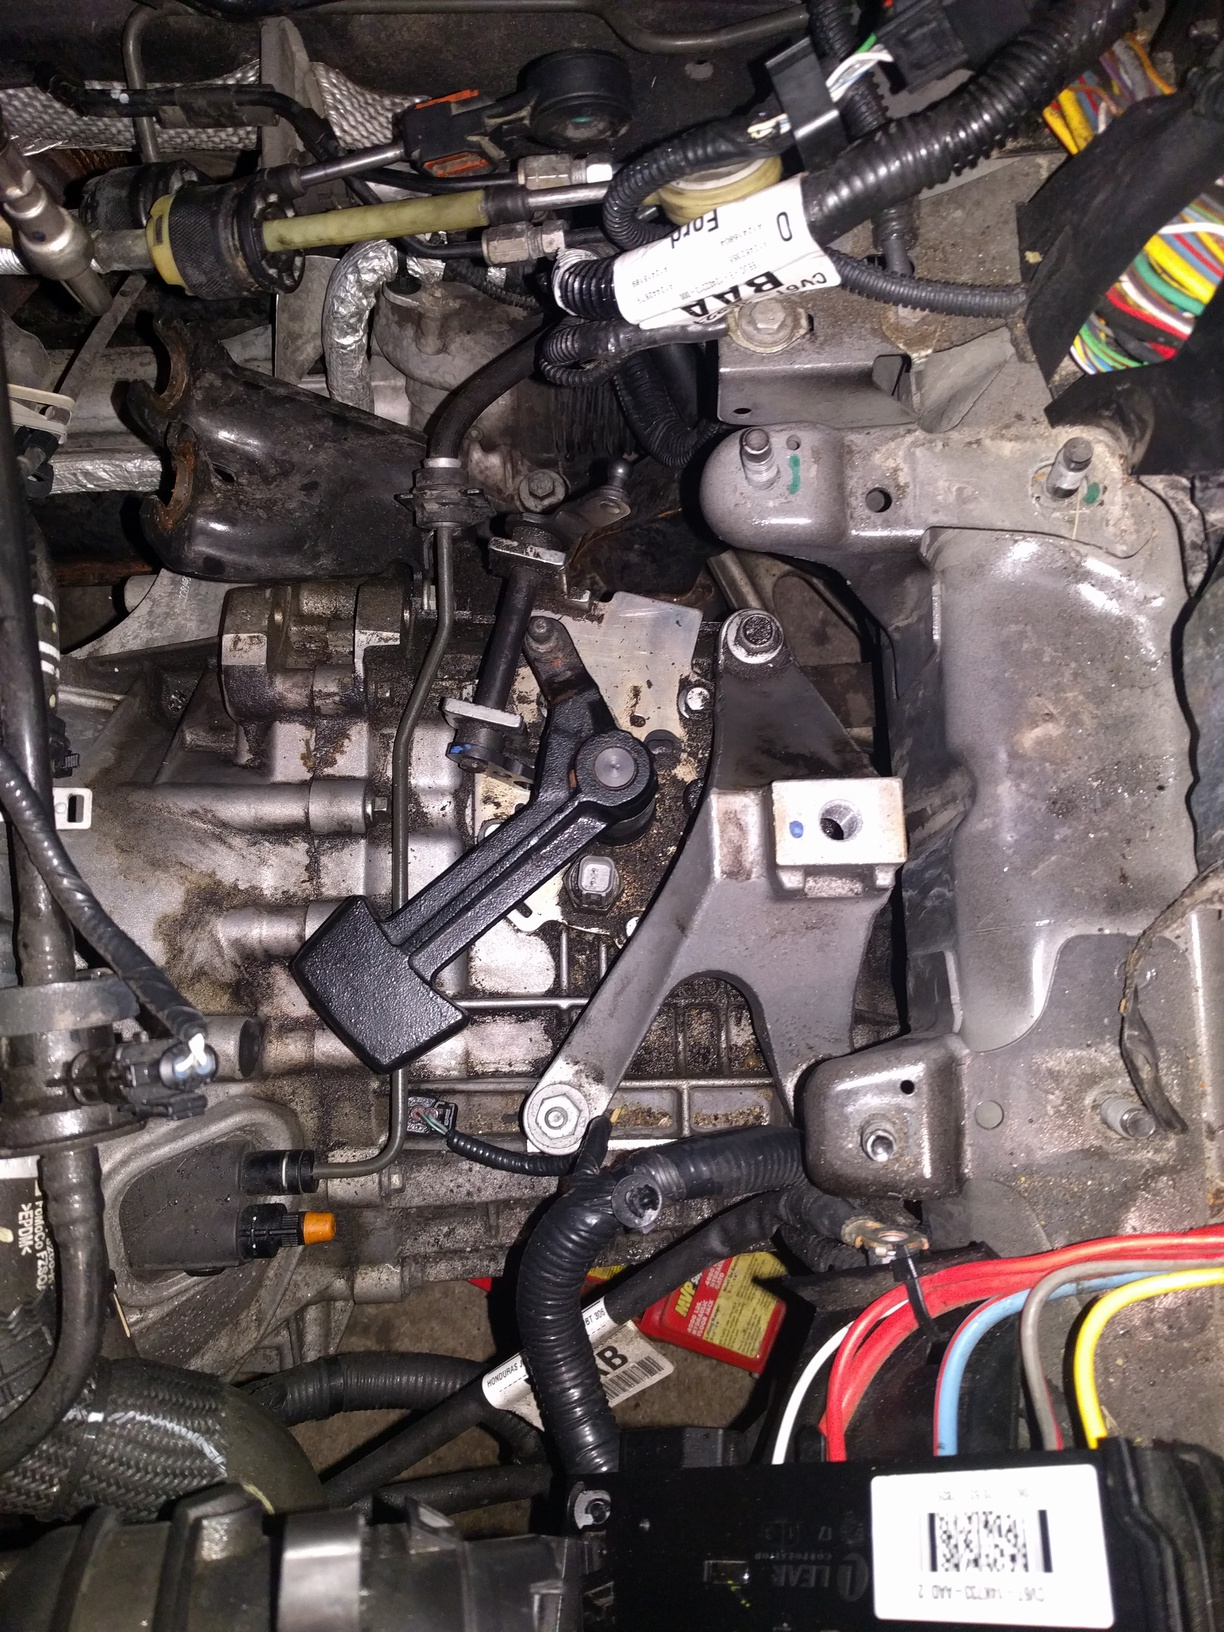 Ford focus 2012 problems